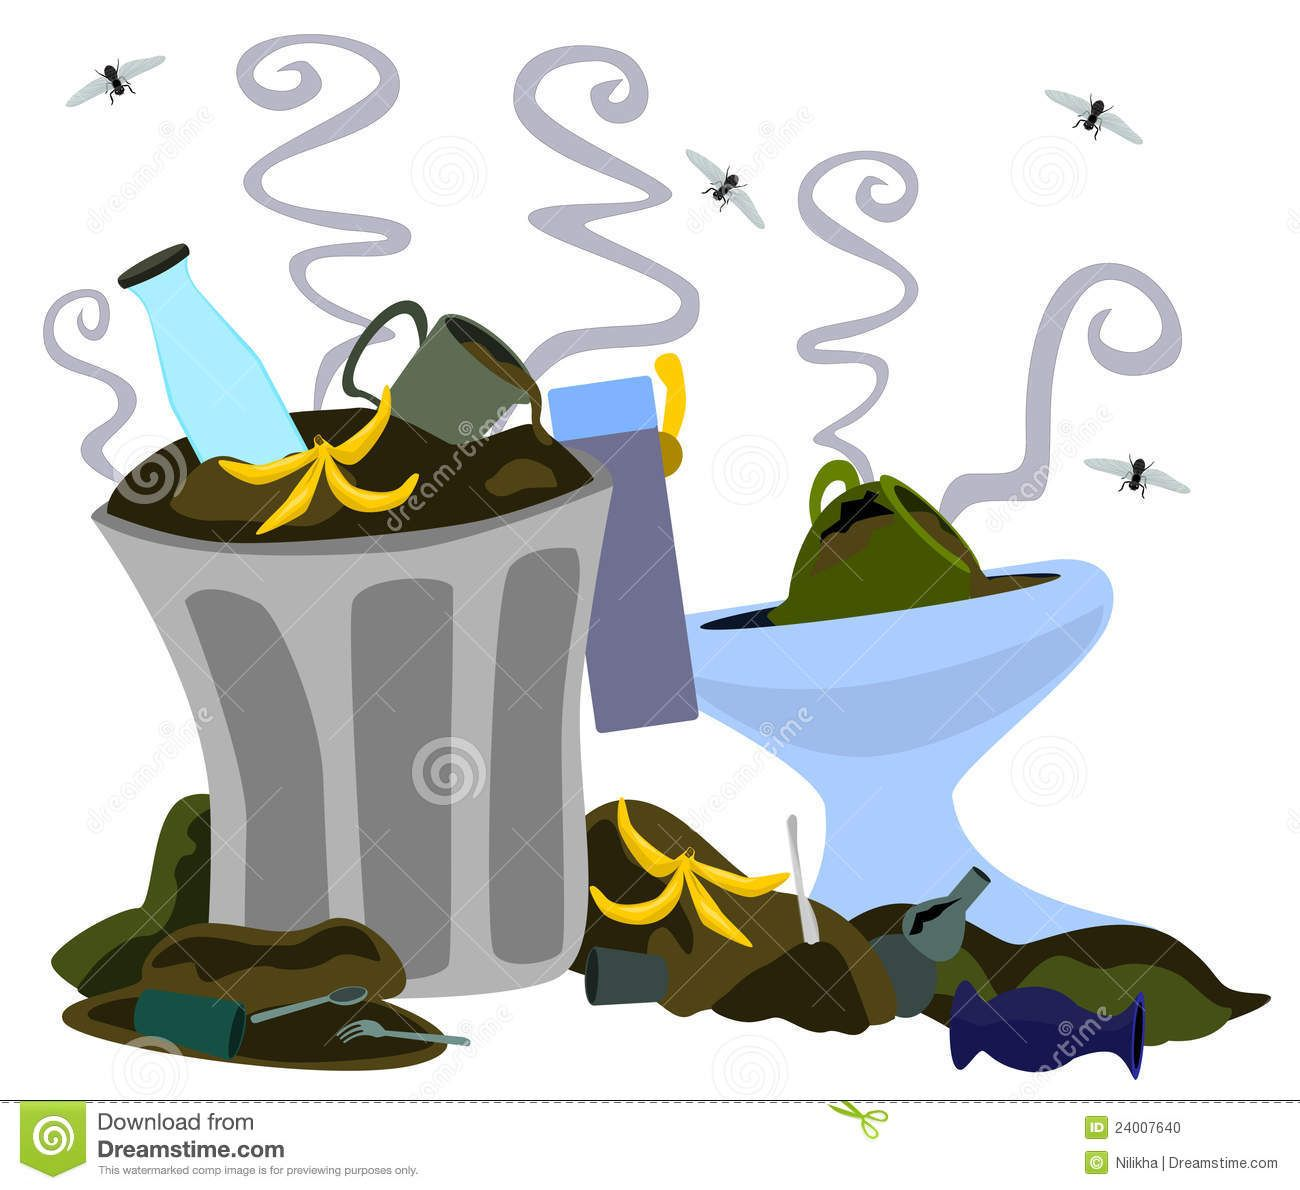 Animated Garbage Dump Google Search Home Game Mit